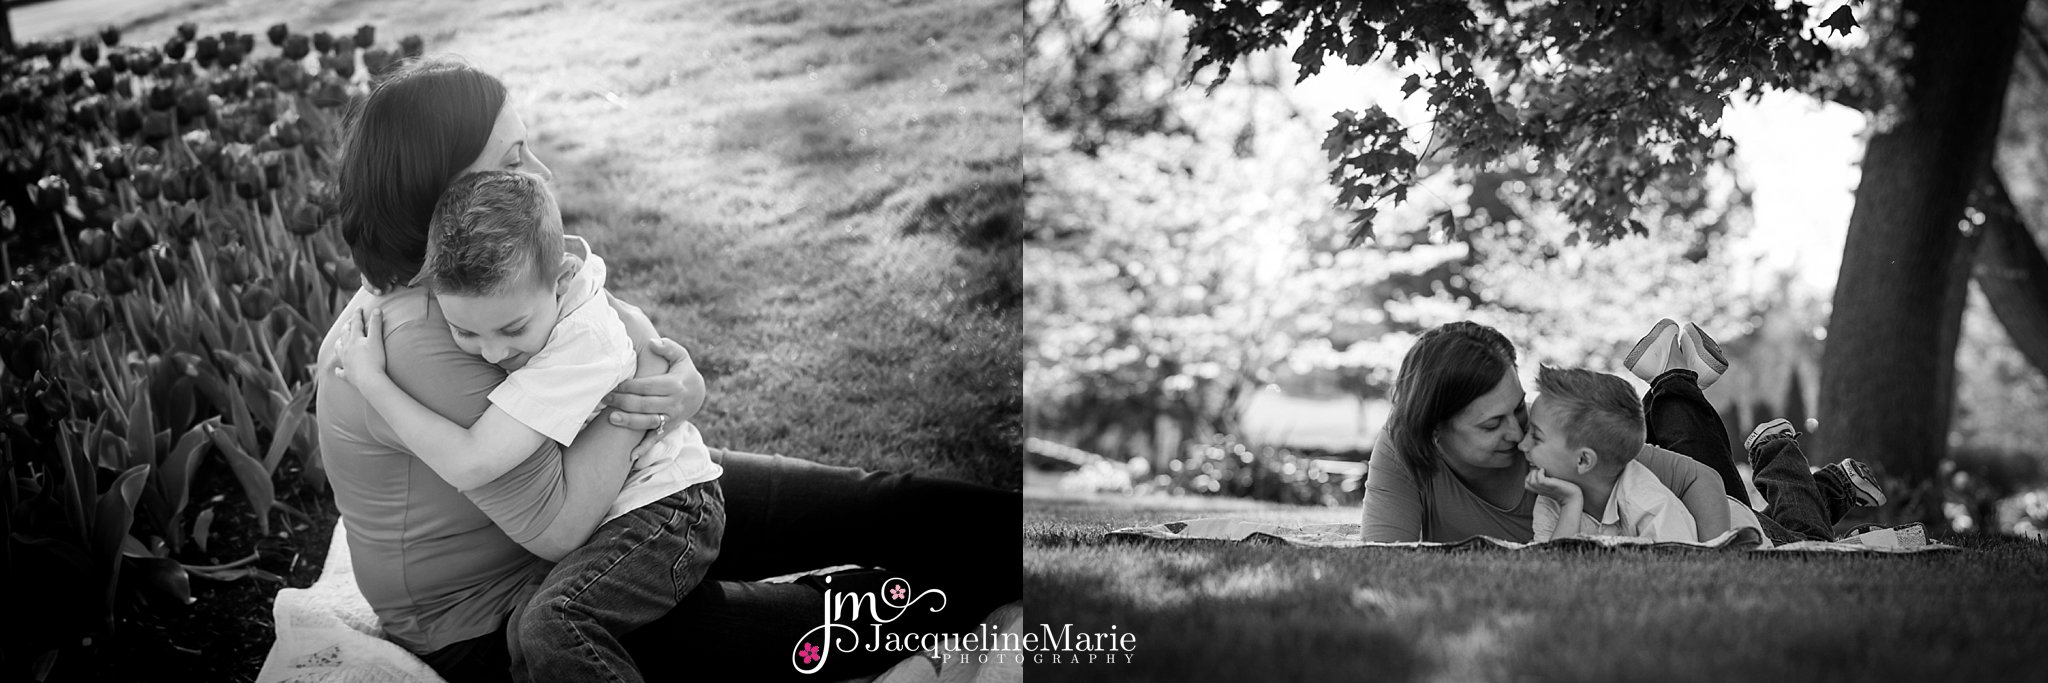 mother and son image | mother and son photography | mommy and son | son hugging mother | black and white photography | Columbus Ohio family photographer